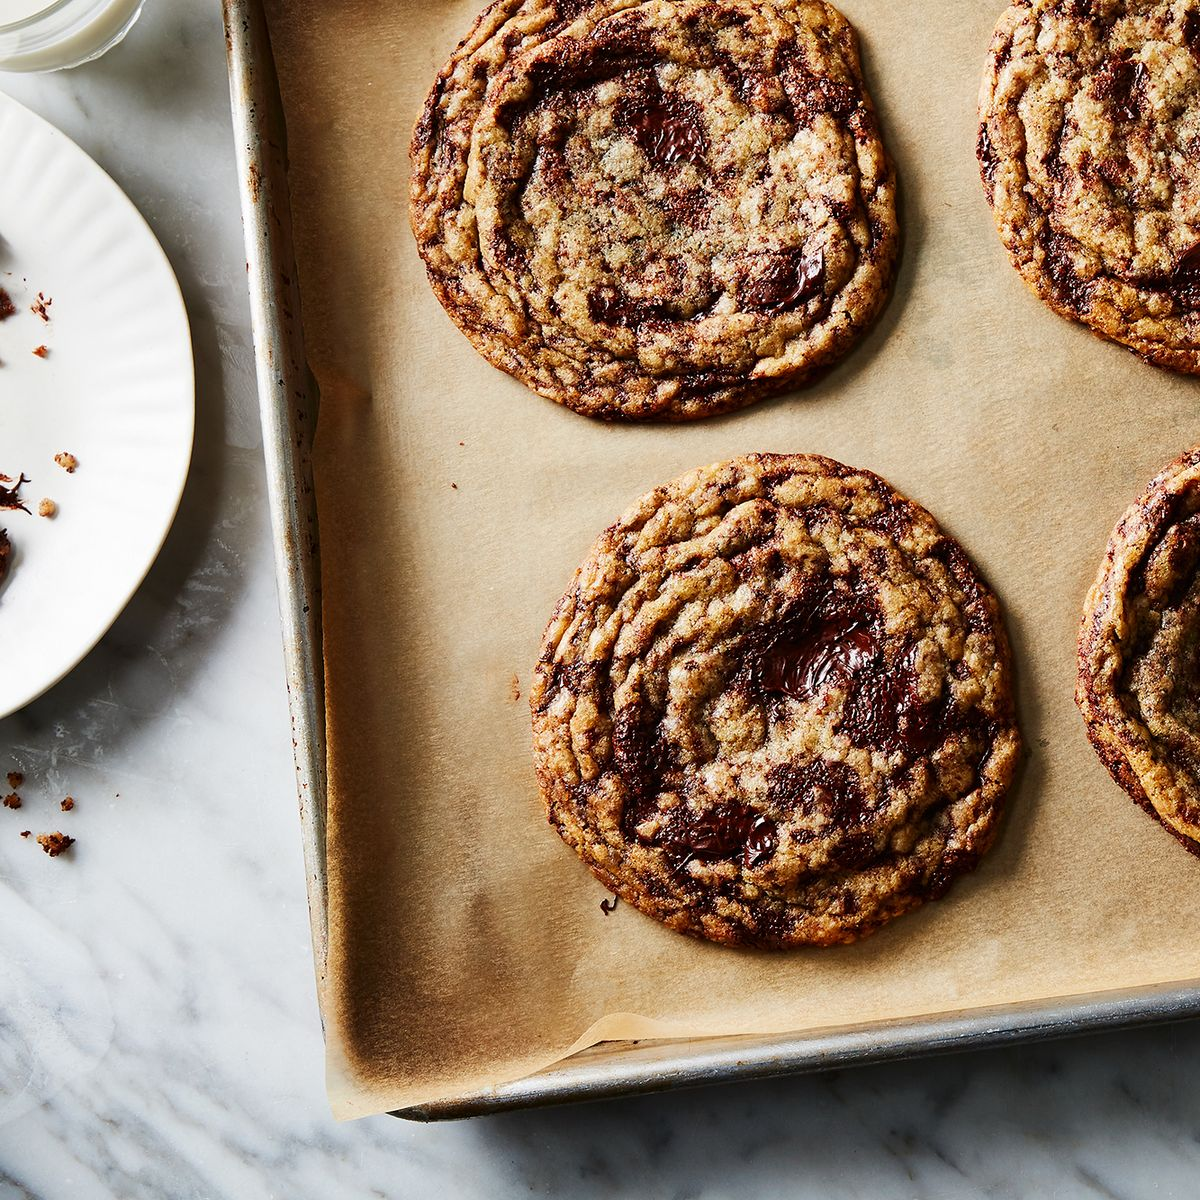 Why Sarah Kieffer S Chocolate Chip Cookies Recipe Went Viral